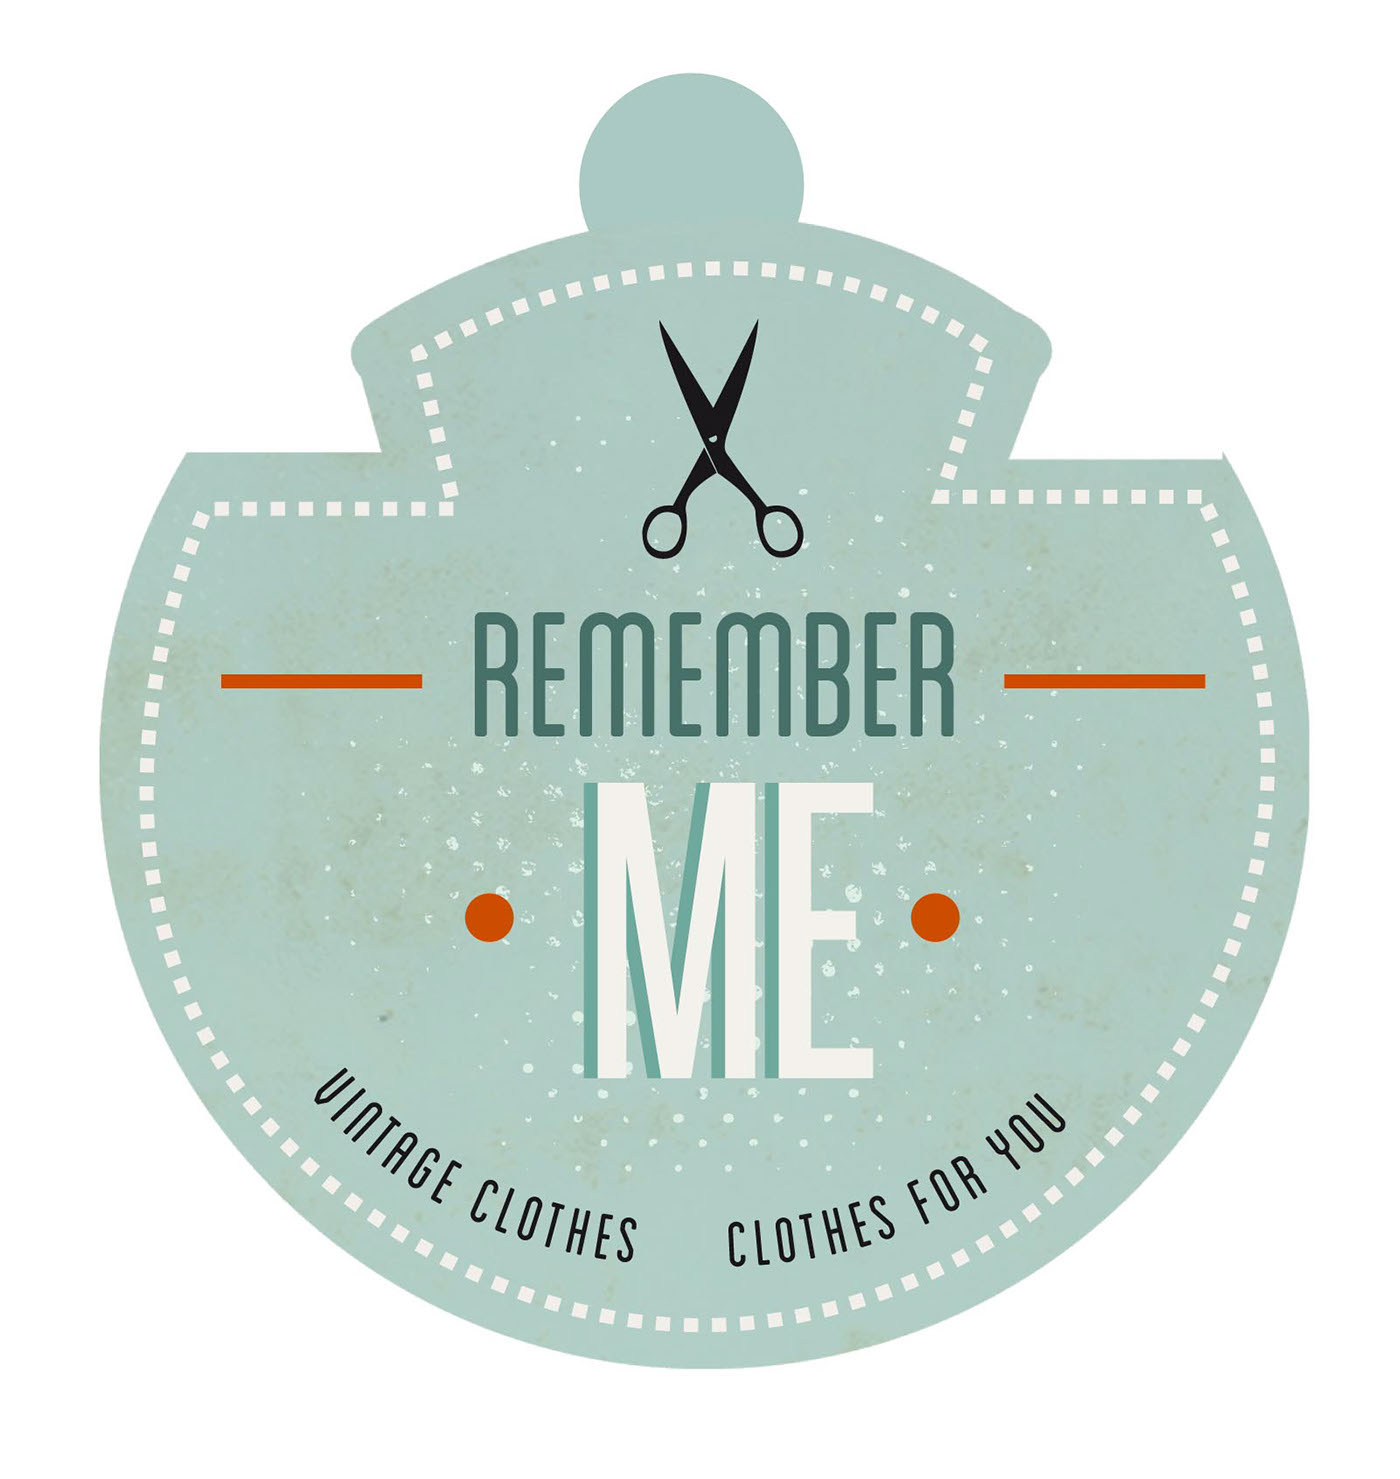 Remember me marca de ropa vintage on behance - Ropa vintage sevilla ...